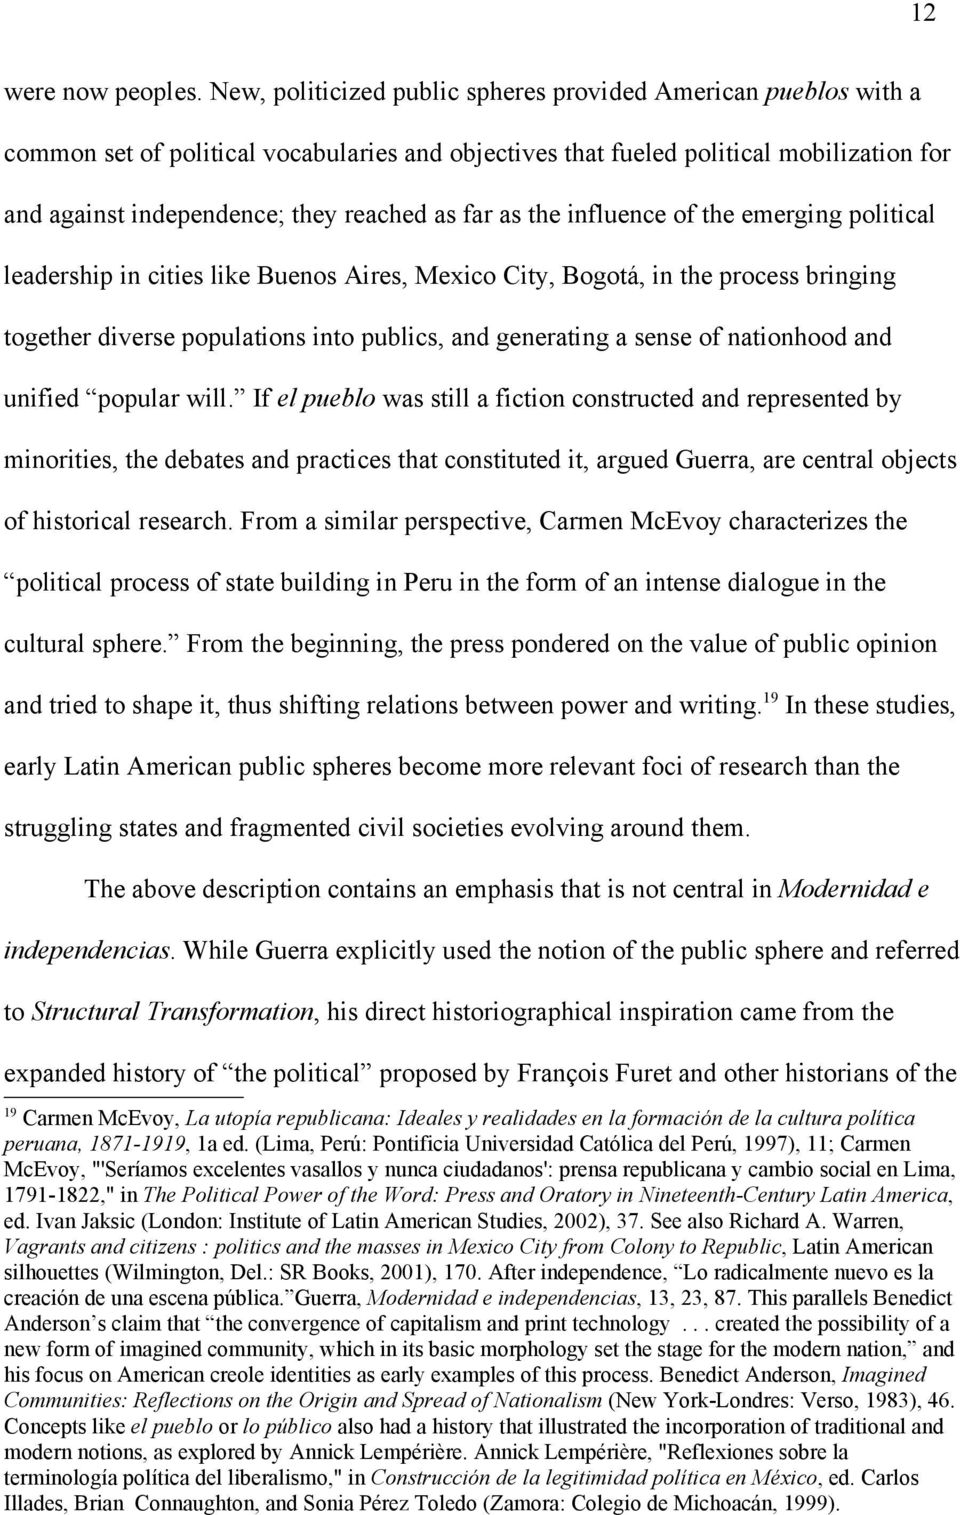 far as the influence of the emerging political leadership in cities like Buenos Aires, Mexico City, Bogotá, in the process bringing together diverse populations into publics, and generating a sense